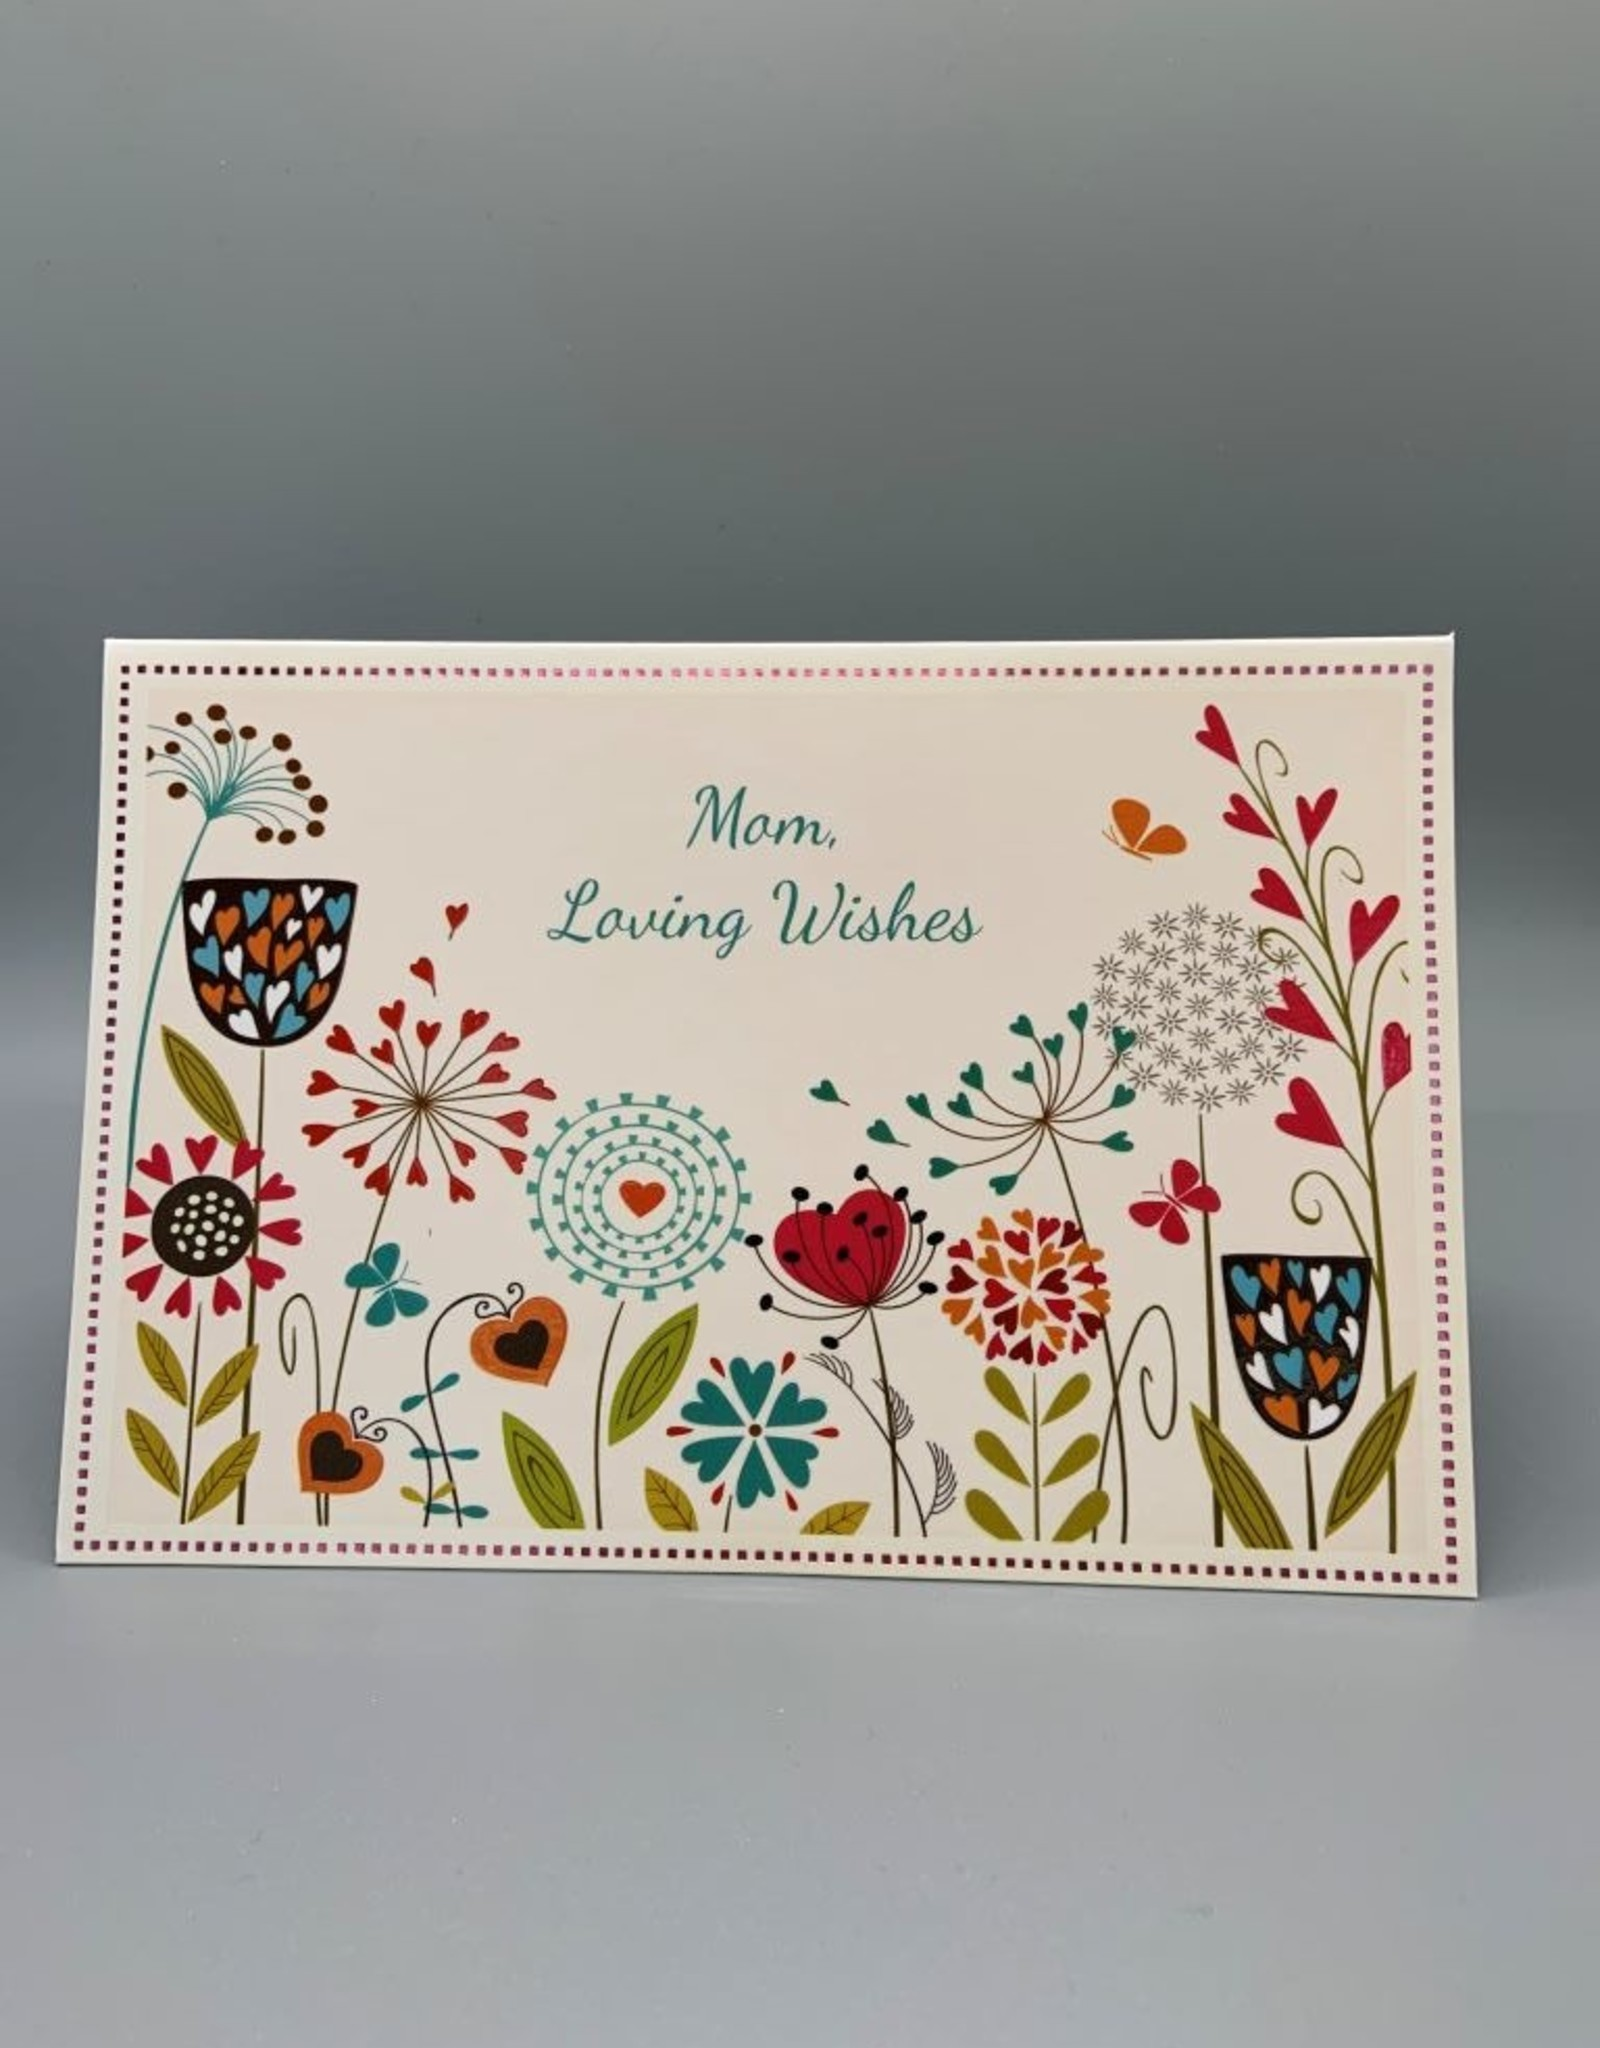 Pictura Mother's Day Card - Mom, Loving Wishes